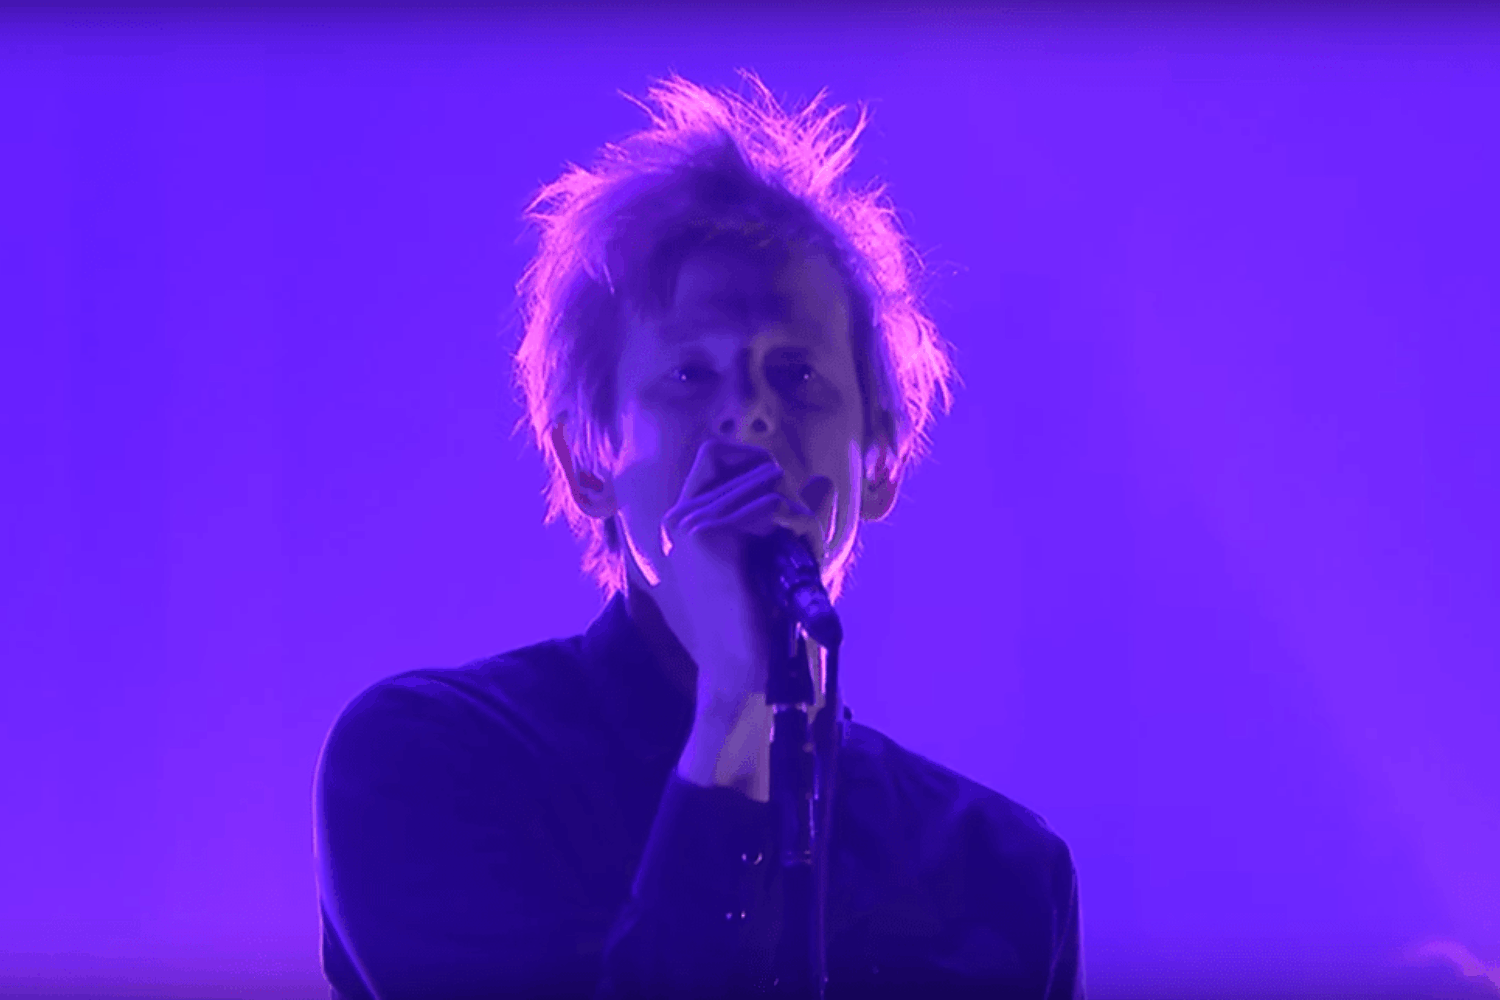 Watch Spoon play 'Do I Have To Talk You Into It' on Fallon